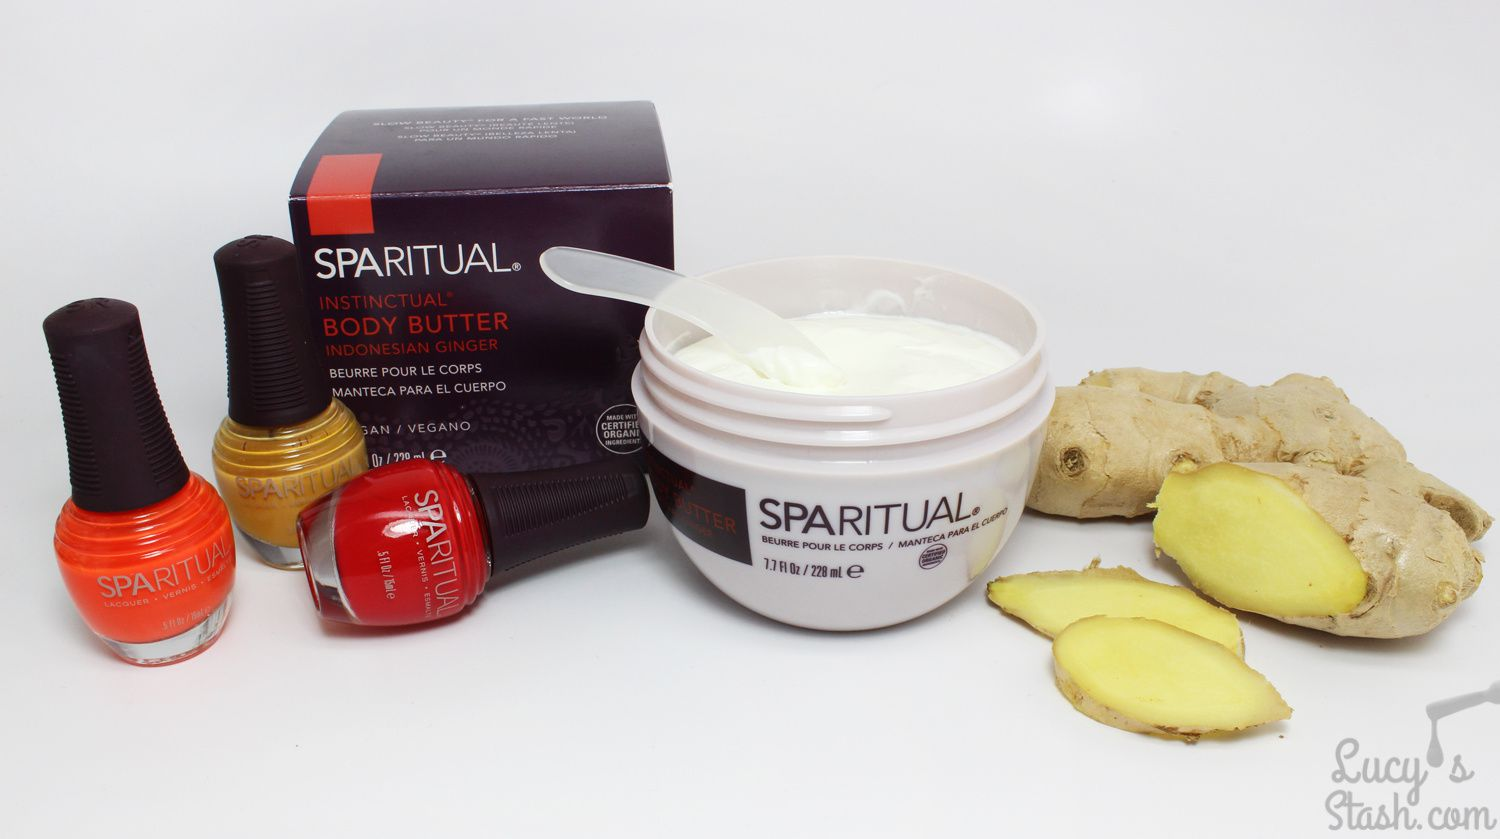 Report: Pedicure at SpaRitual Salon in Brno (...and yes, there are feet! ;) + SpaRitual Body Butter Review